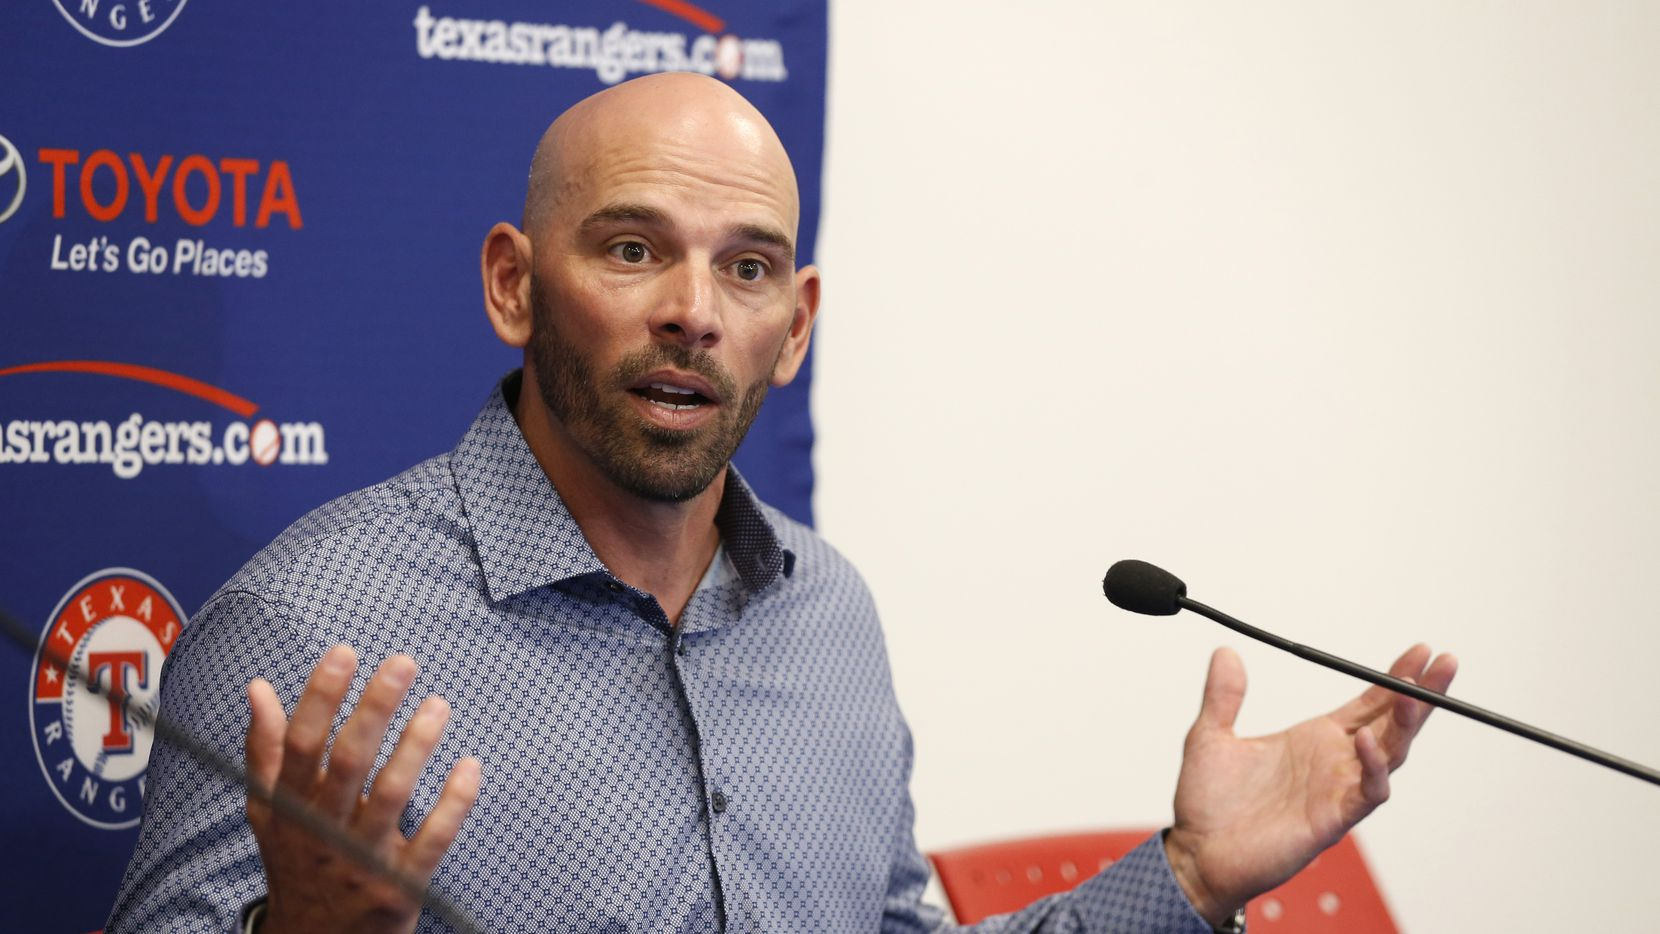 Texas Rangers manager Chris Woodward answers questions during a press conference at Mercy Street Sports Complex in Dallas on Wednesday, January 15, 2020.